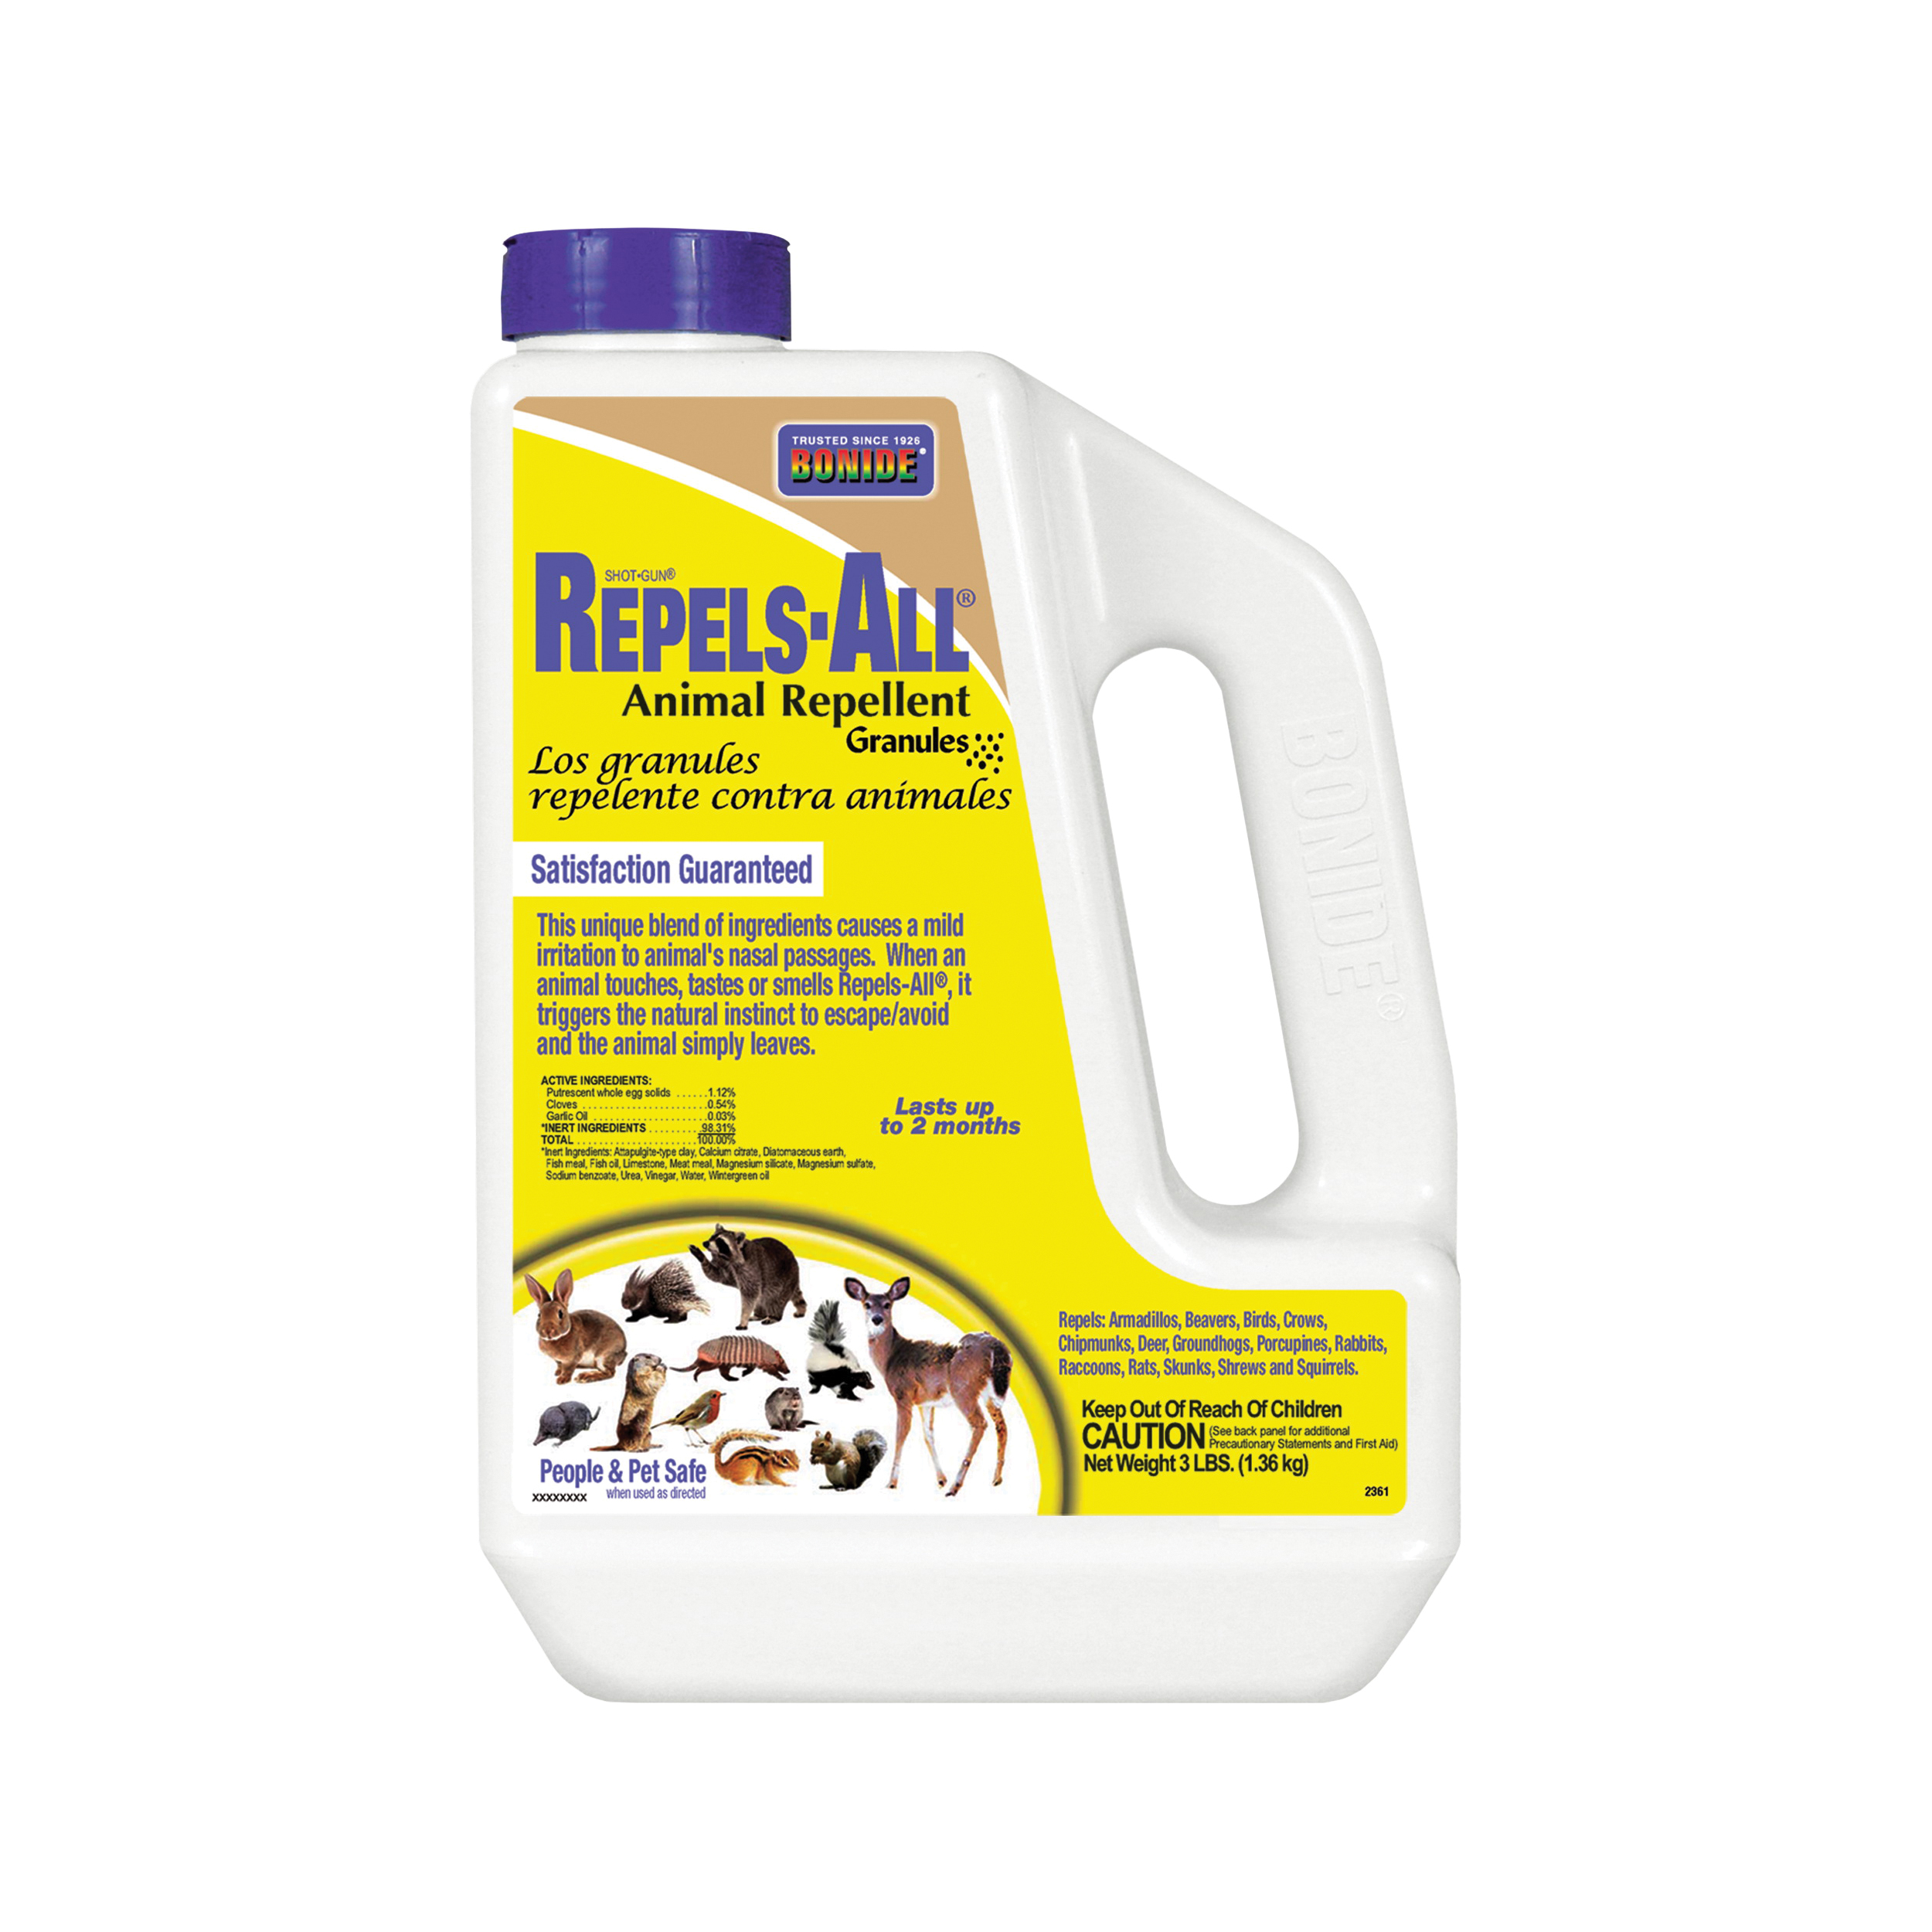 Picture of Bonide 2361 Animal Repellent